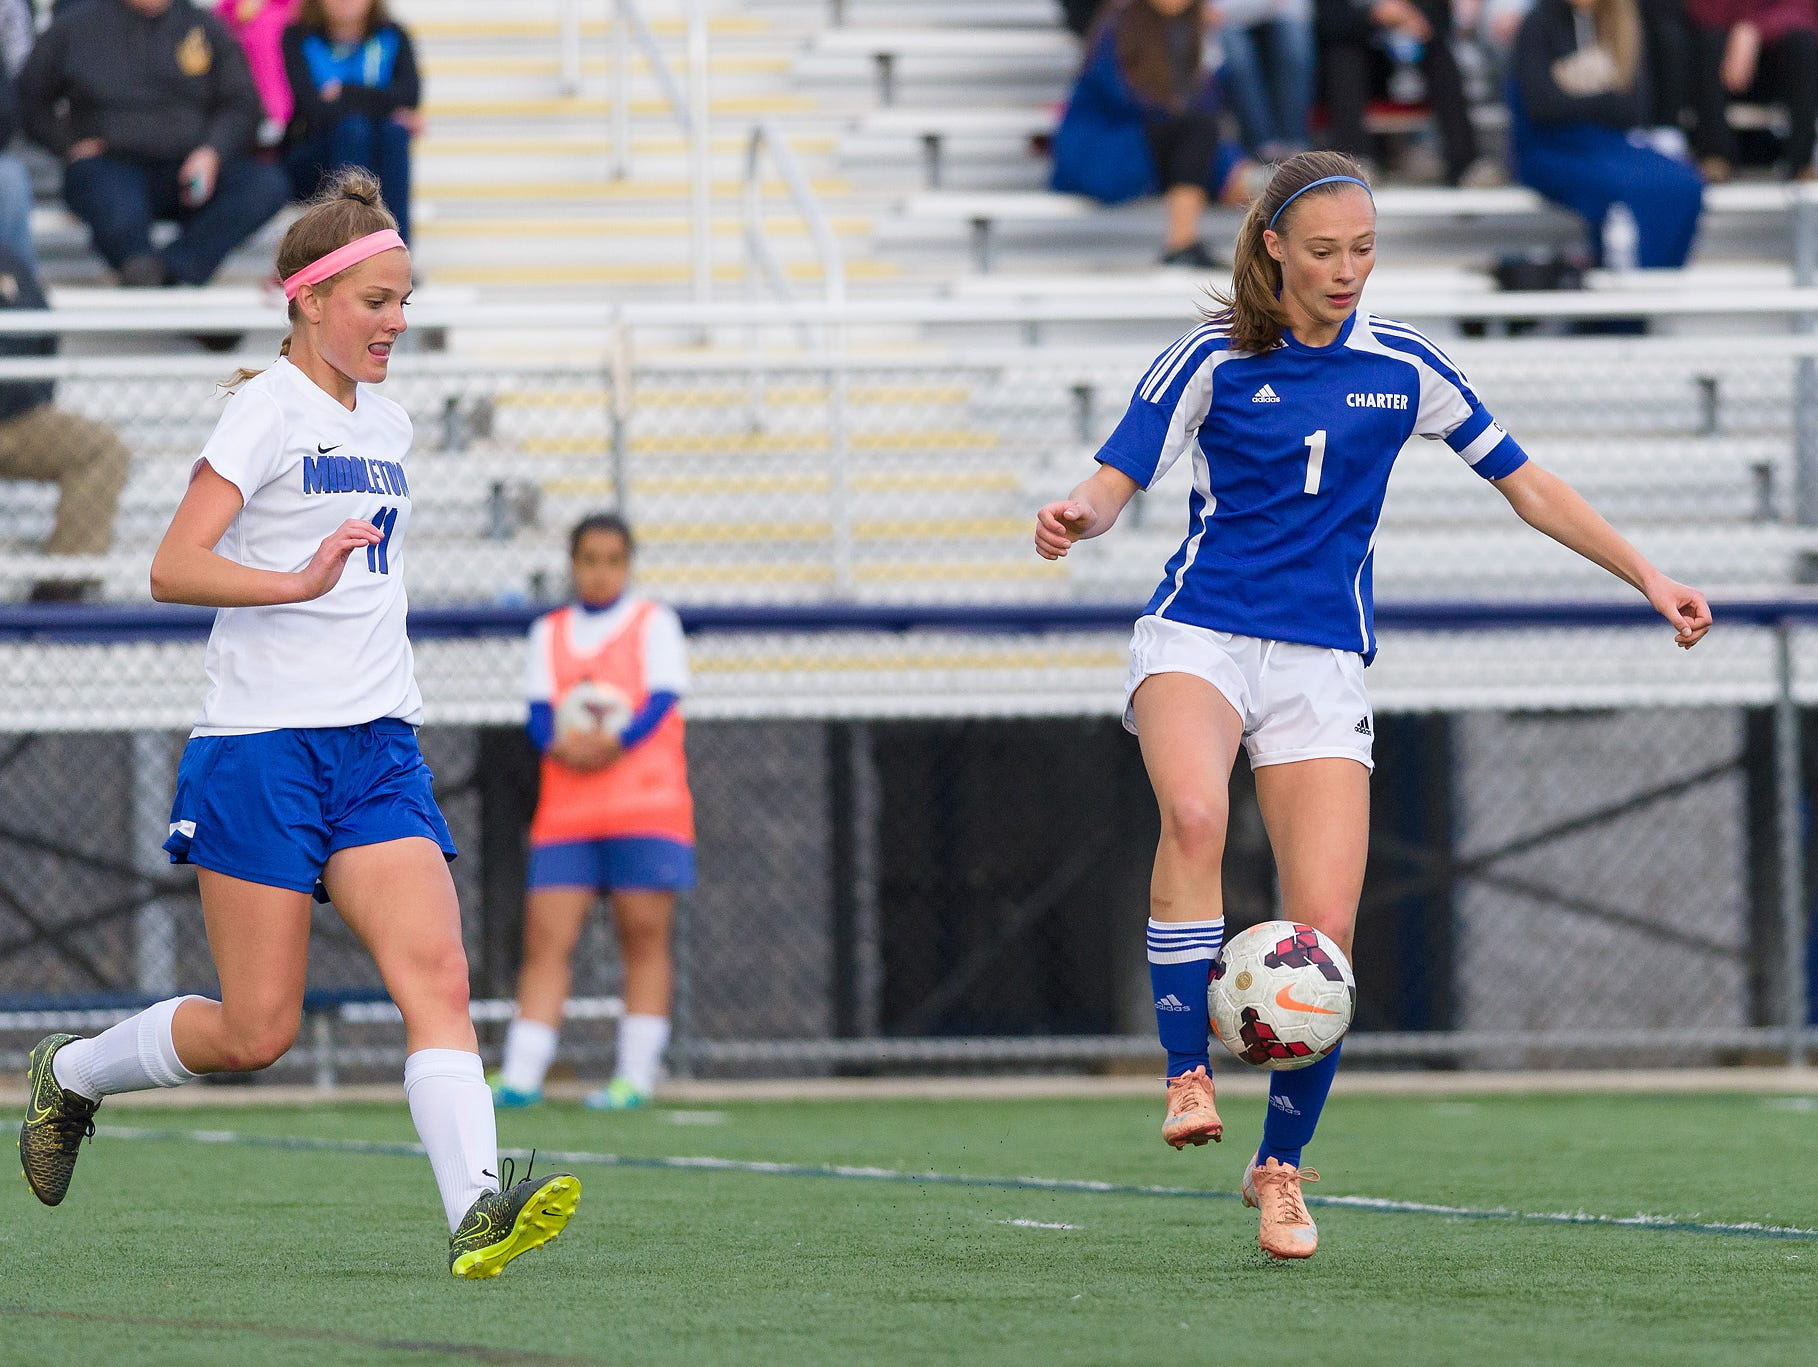 Sam Peters (1) of Charter tries to settle the ball as Alexandra Rodriguez (11) of Middletown approaches in a Charter at Middletown girls soccer game on Wednesday.